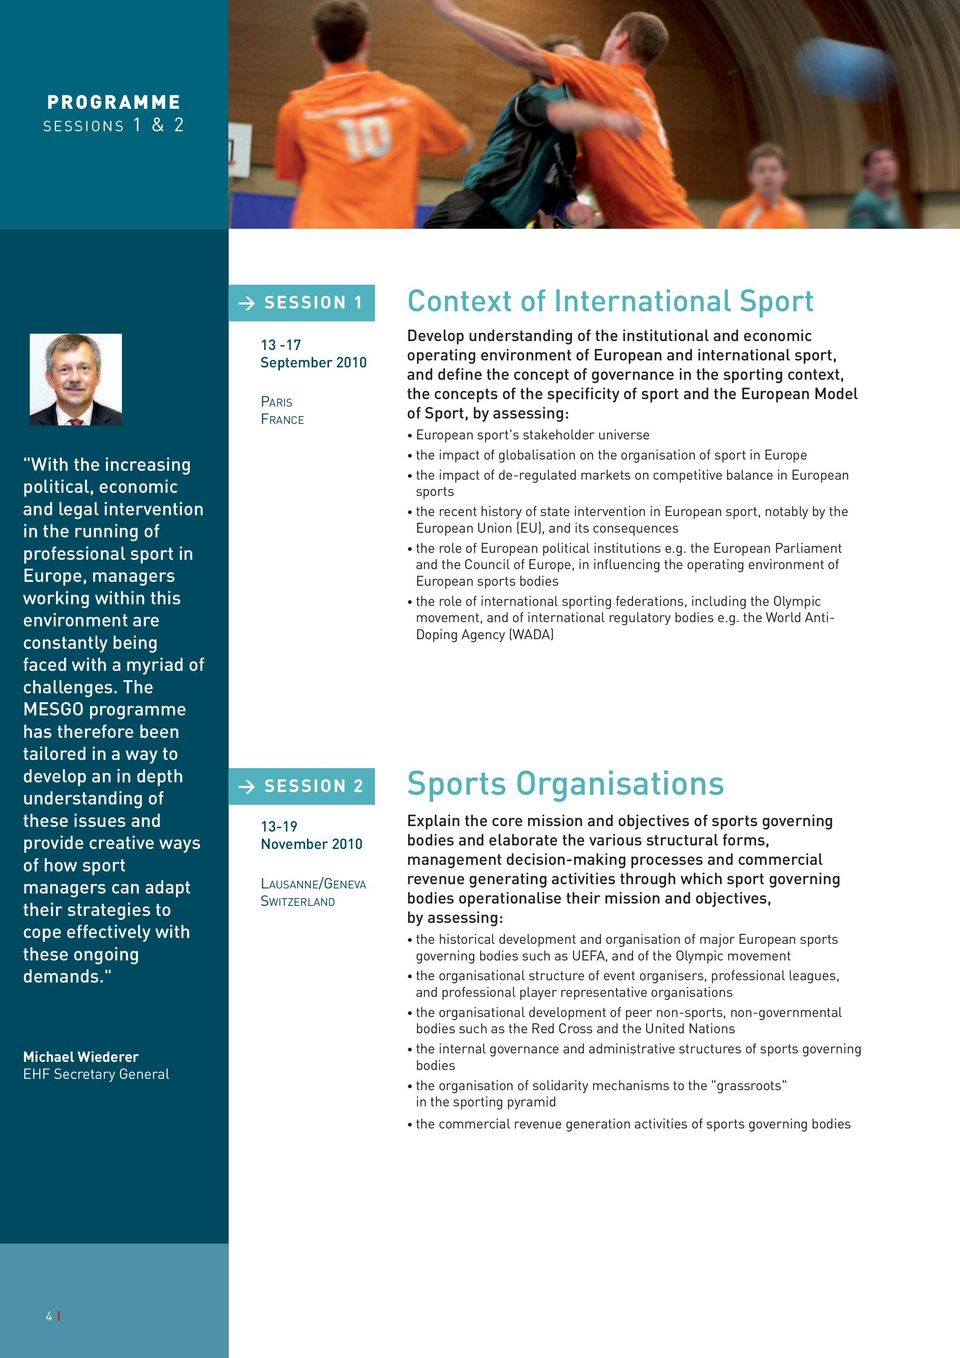 The MESGO programme has therefore been tailored in a way to develop an in depth understanding of these issues and provide creative ways of how sport managers can adapt their strategies to cope